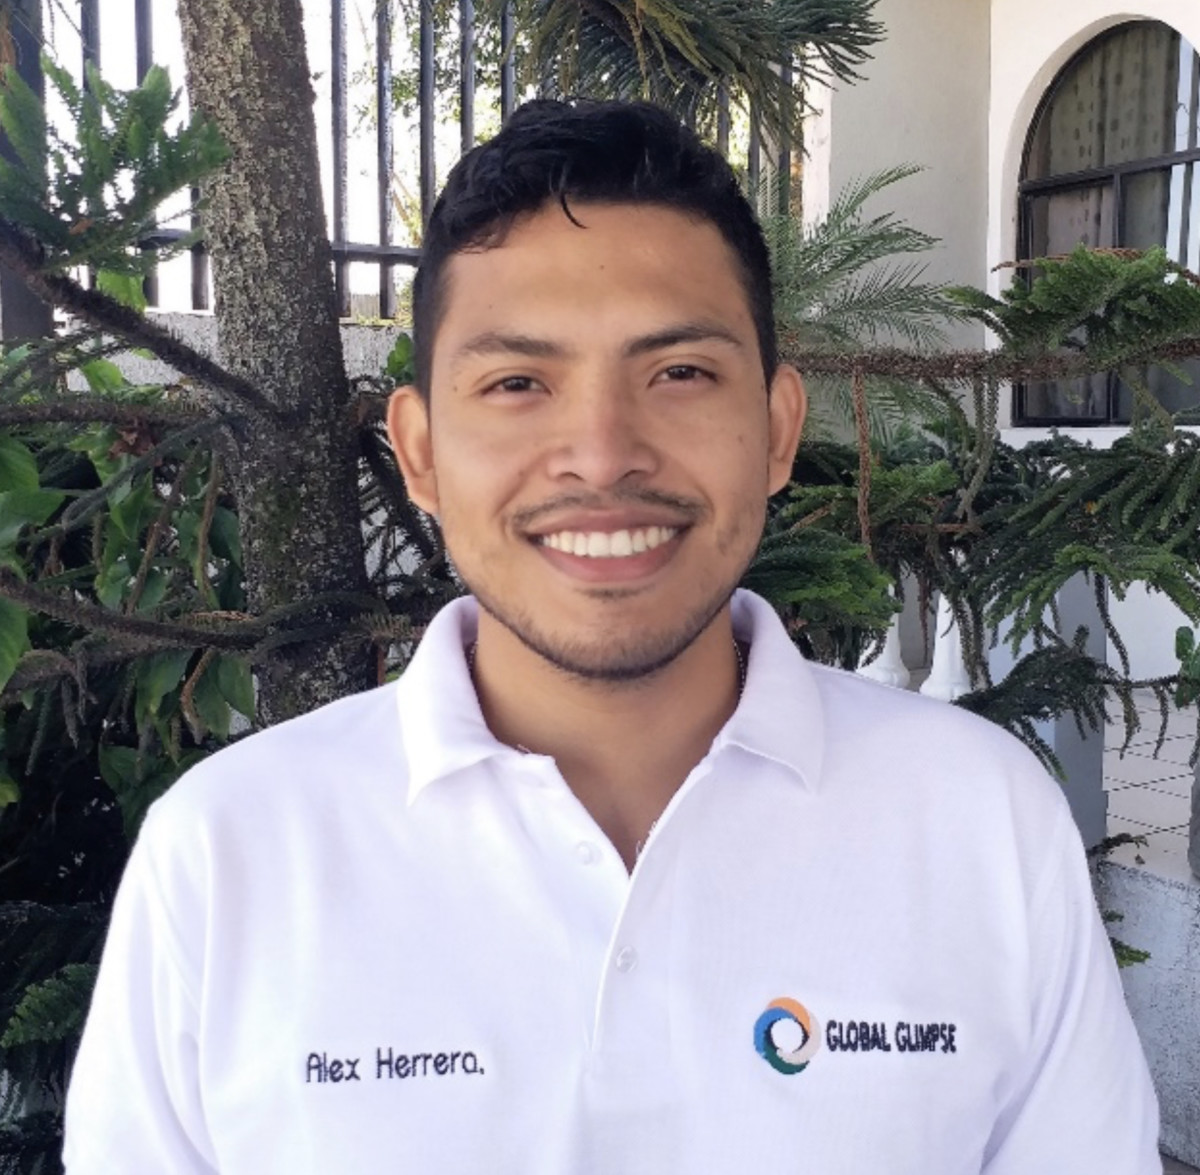 Global Glimpse Team - Alex Herrera